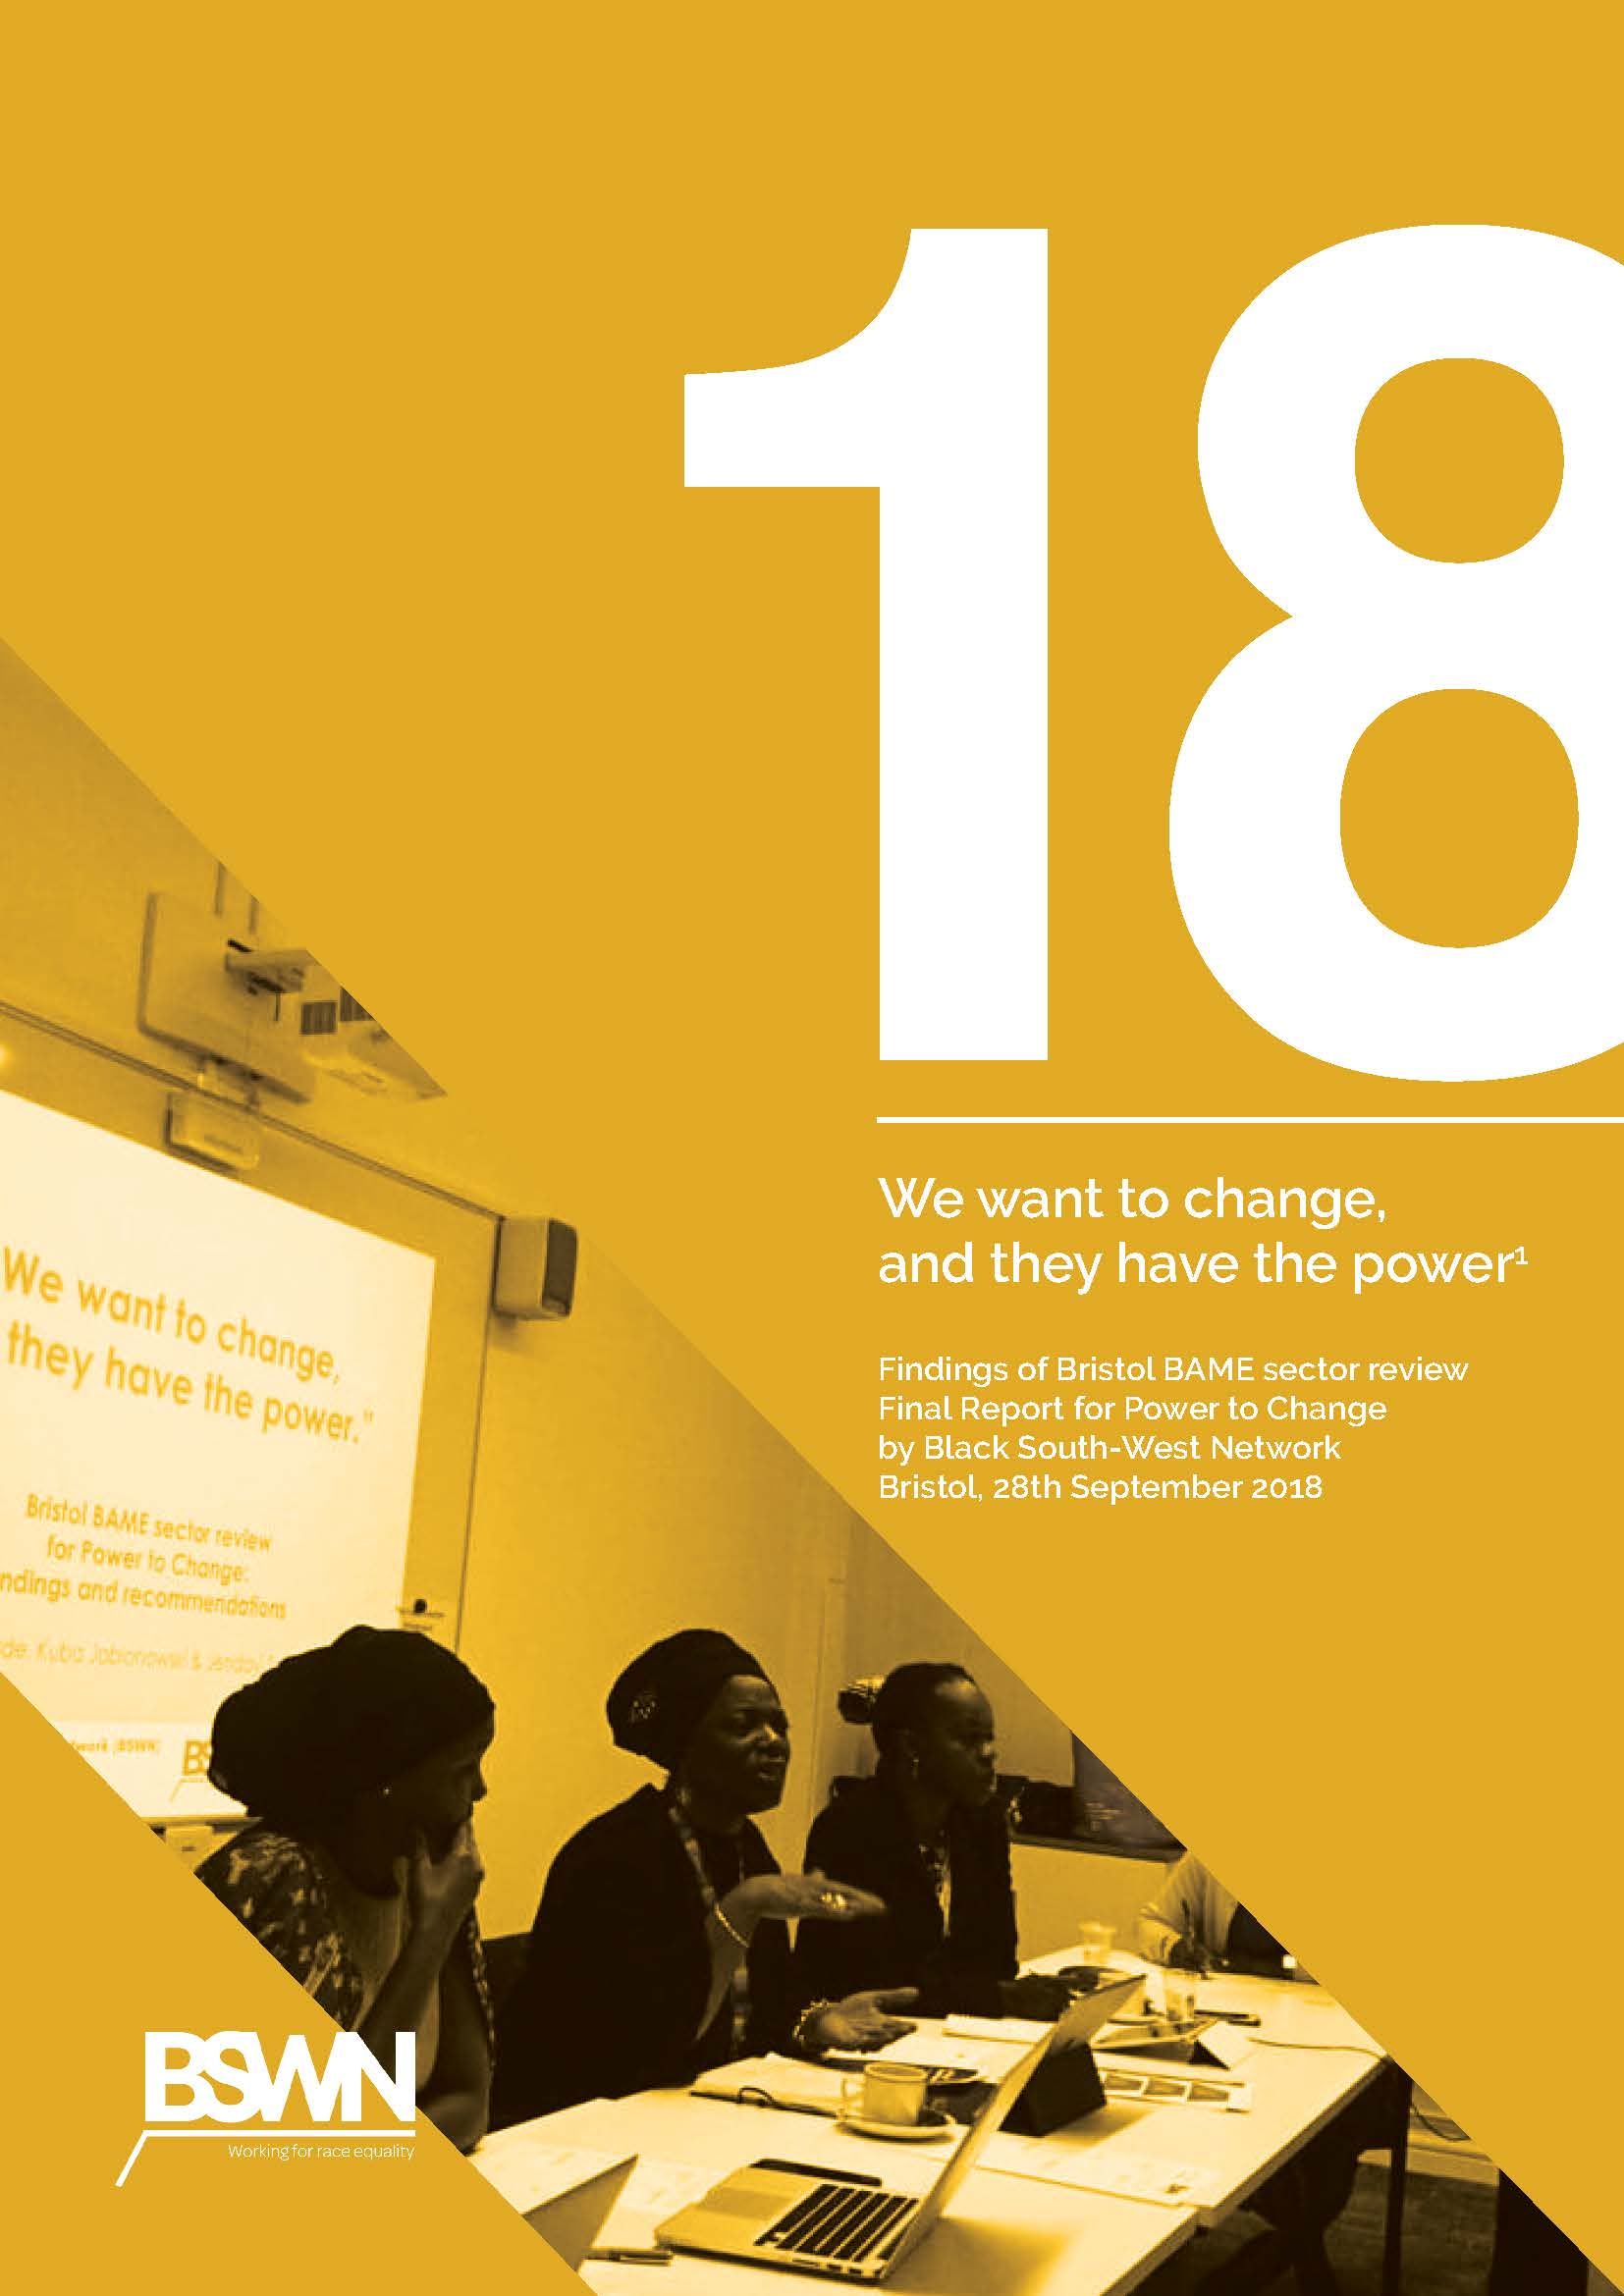 Findings of Bristol BAME sector review